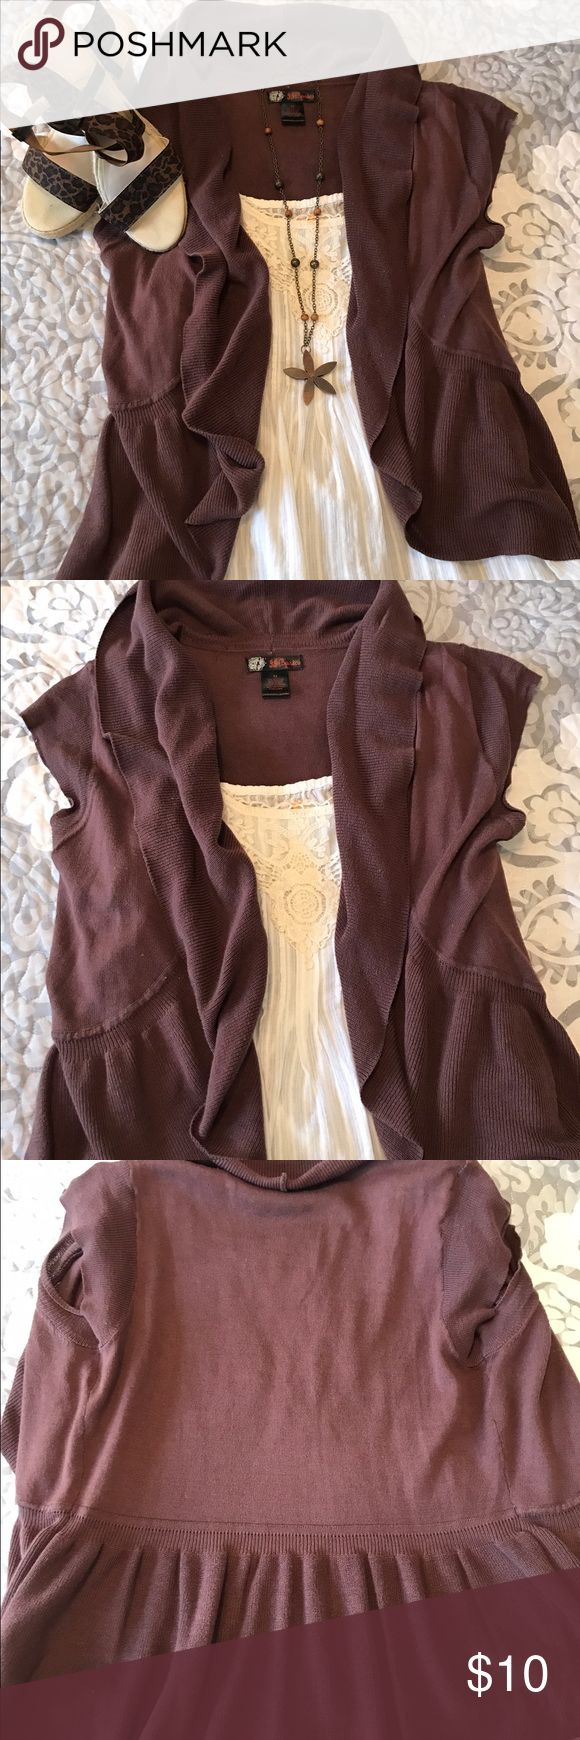 Short sleeve cardigan Brown short sleeve ruffle cardigan •NO trades, thanks for looking. jj basics Sweaters Shrugs & Ponchos